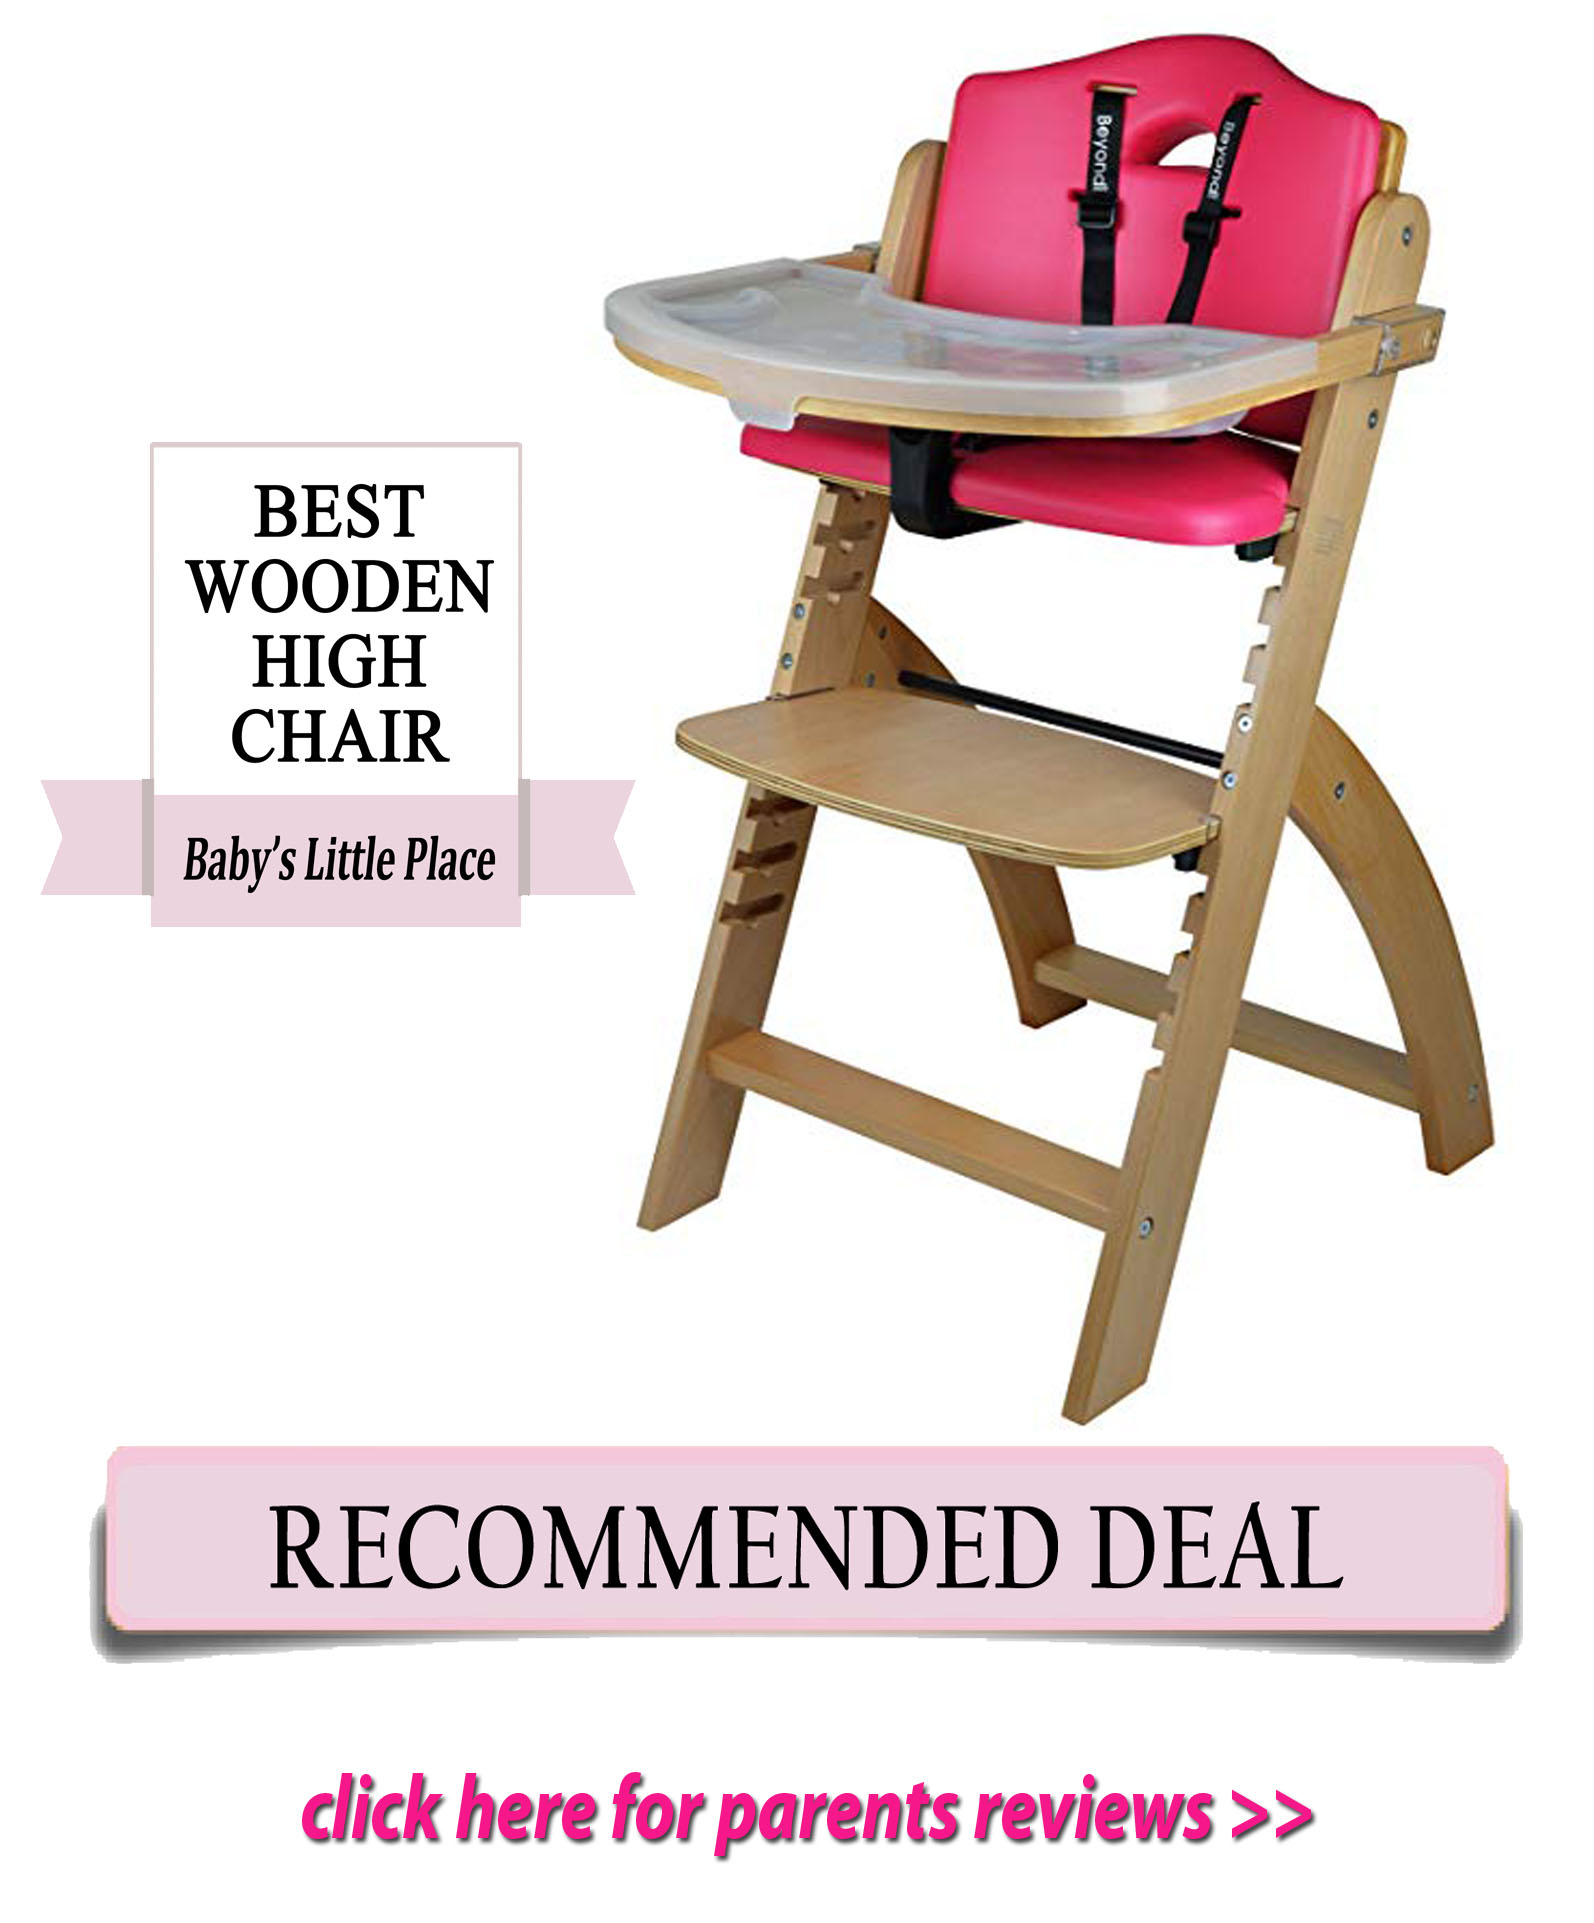 Abiie Beyond Wooden High Chair Review Babys Little Place